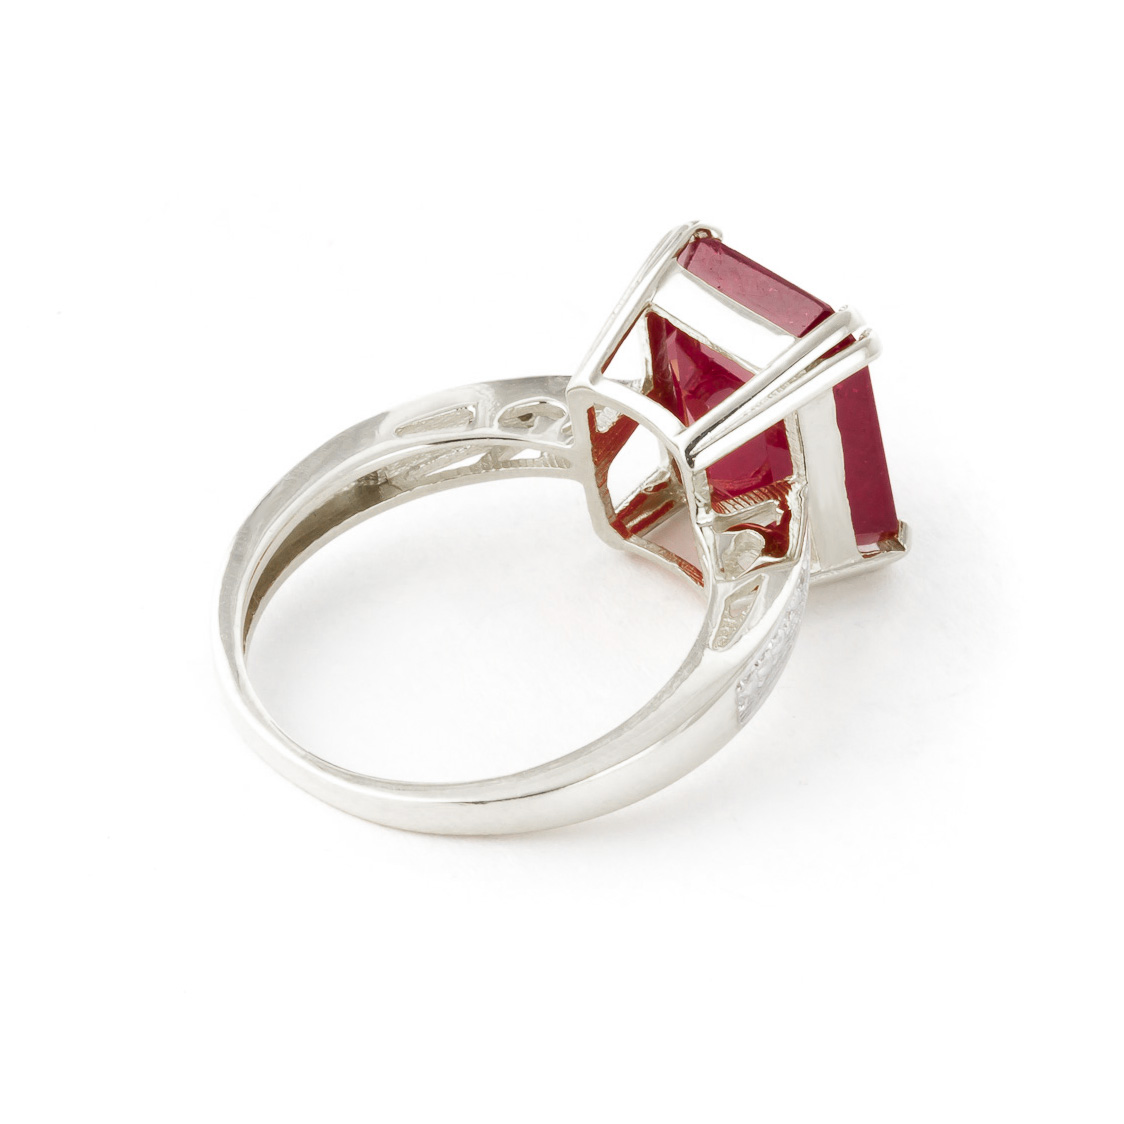 Octagon Cut Ruby Ring 7.27 ctw in 9ct White Gold